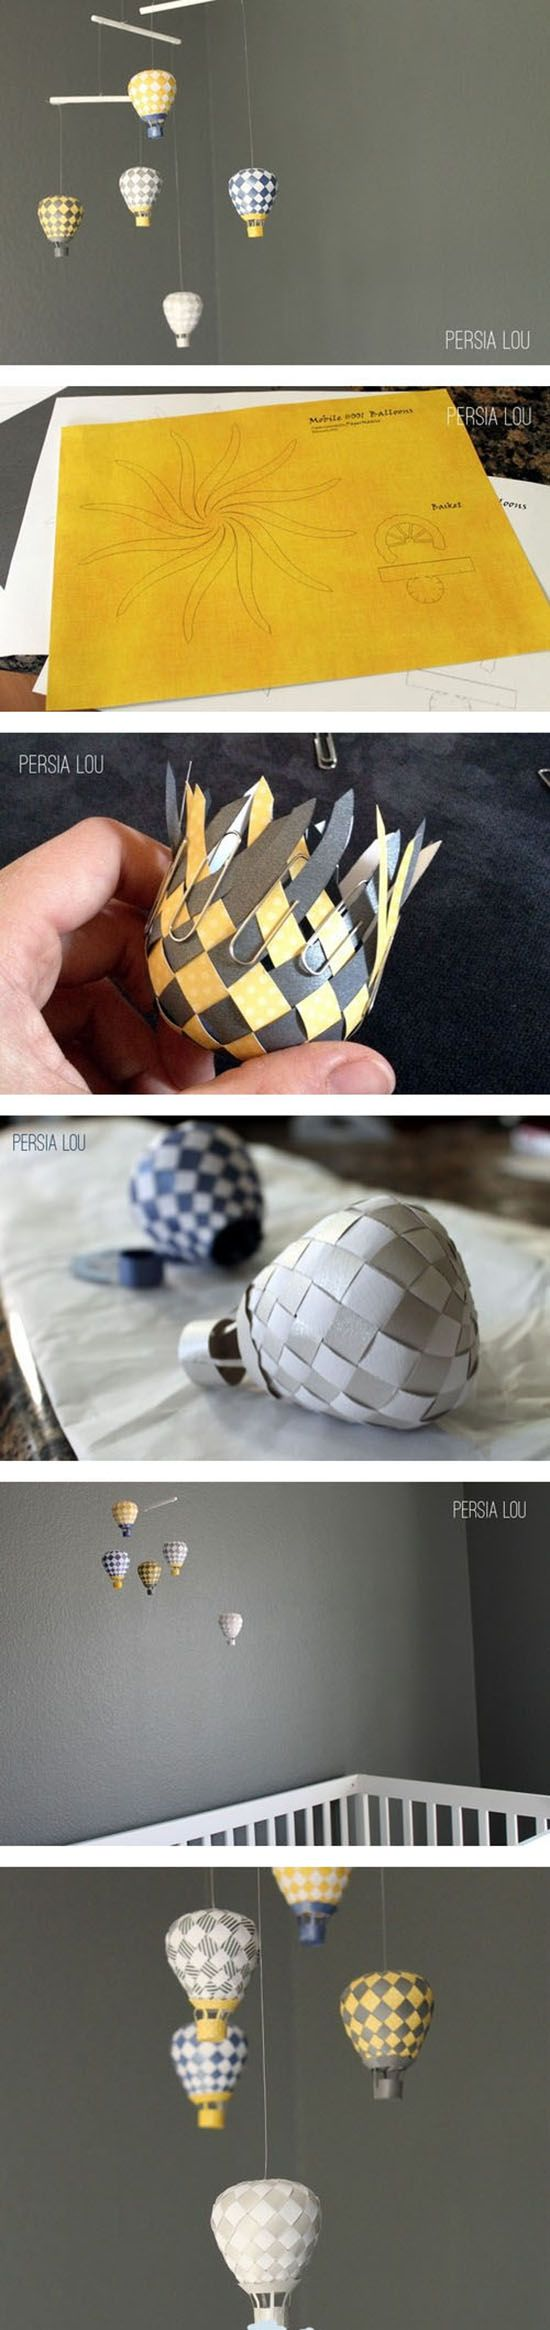 Diy Cute hot air balloons. So cool!